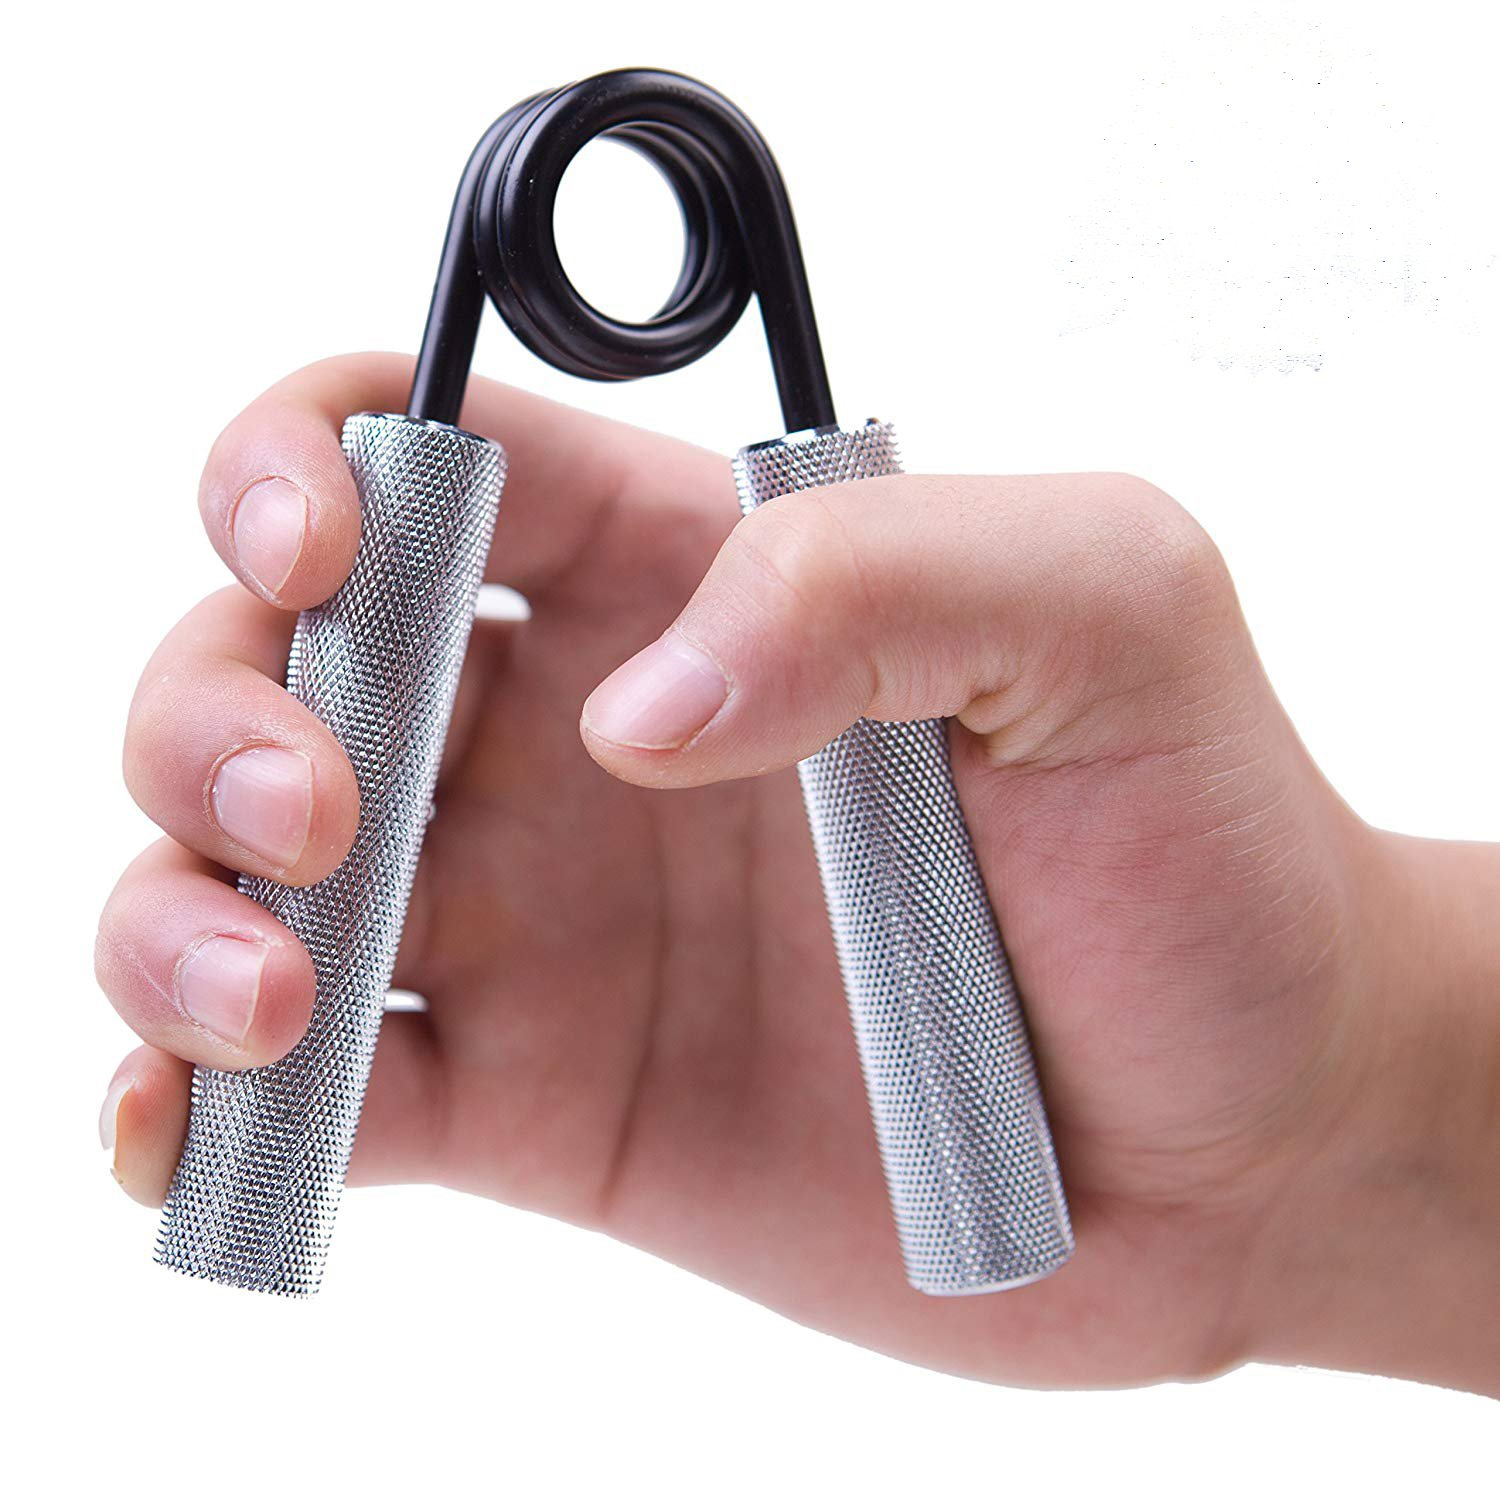 Overvl 3 Pack 100Lbs 150Lbs 200Lbs Hand Exerciser Grip Strengthener Hand Squeezer for Beginners to Professionals.